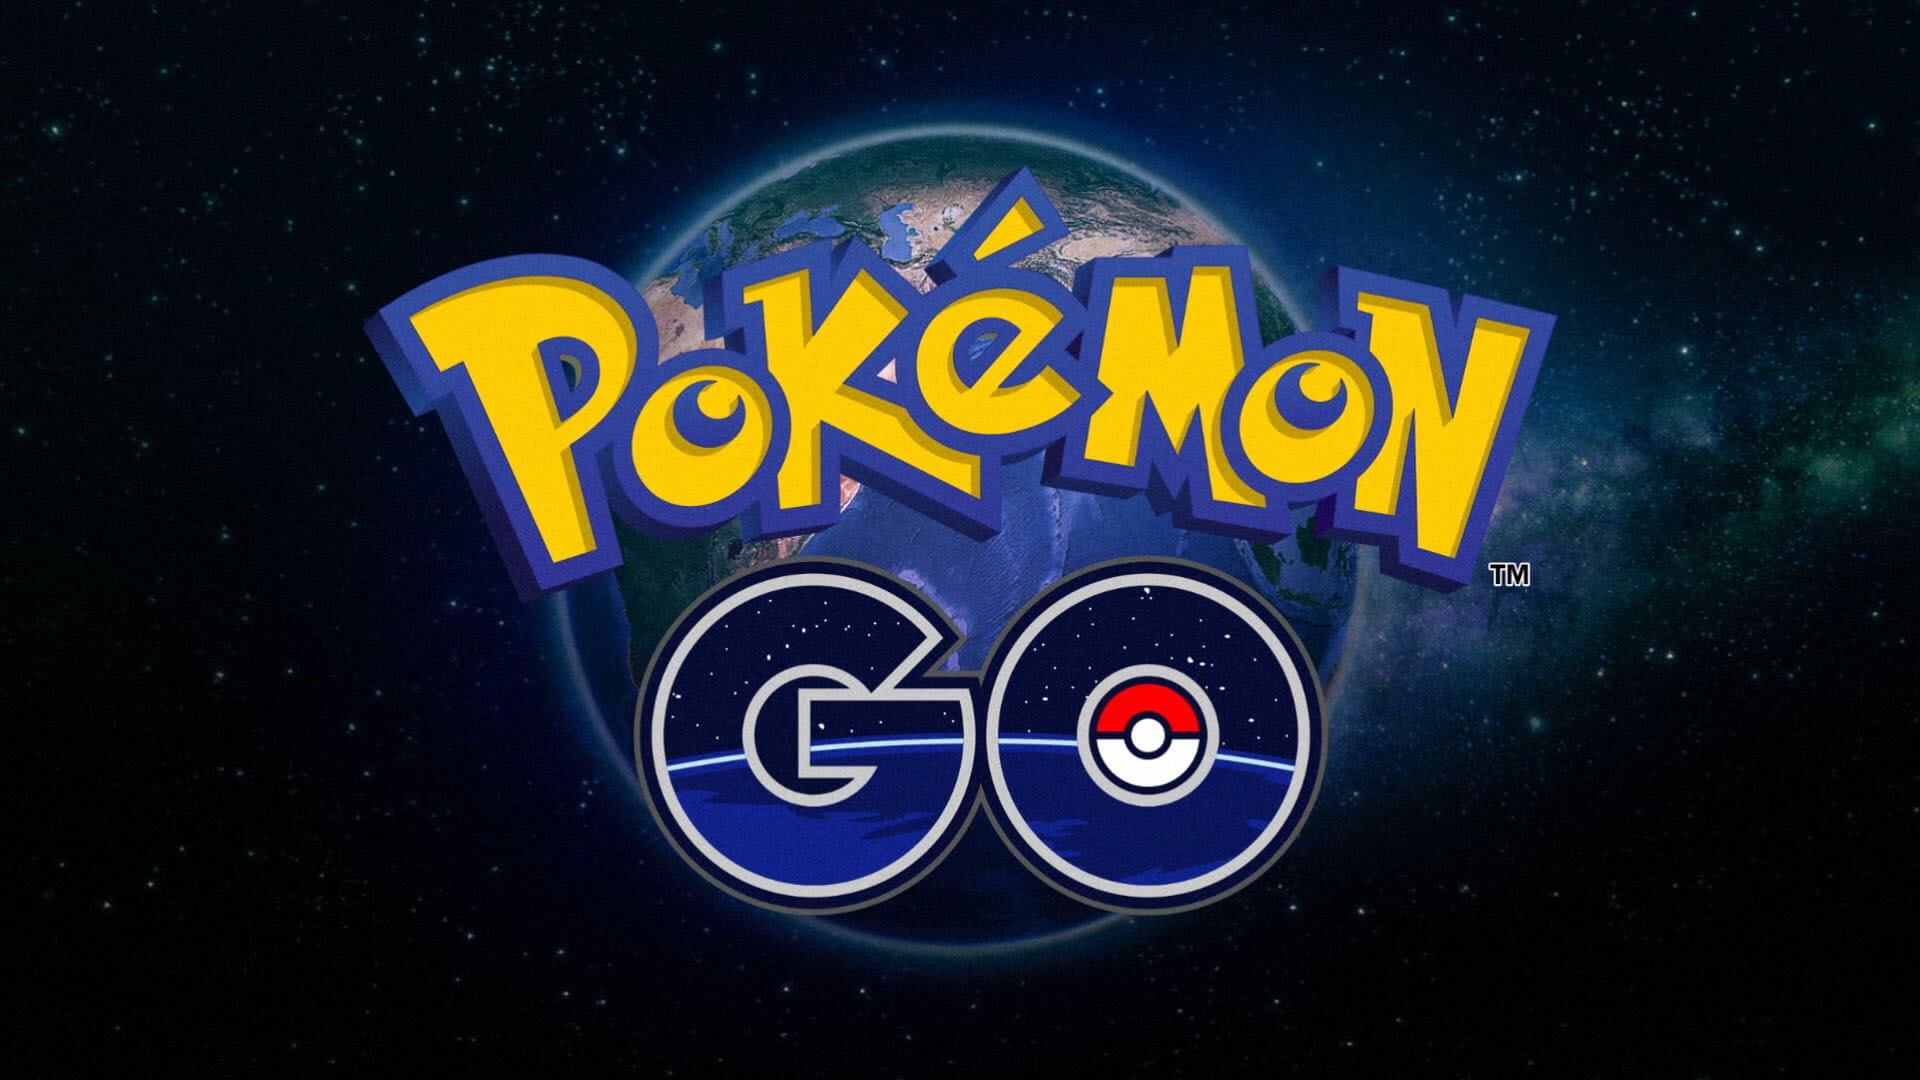 How to install Pokémon Go on Android